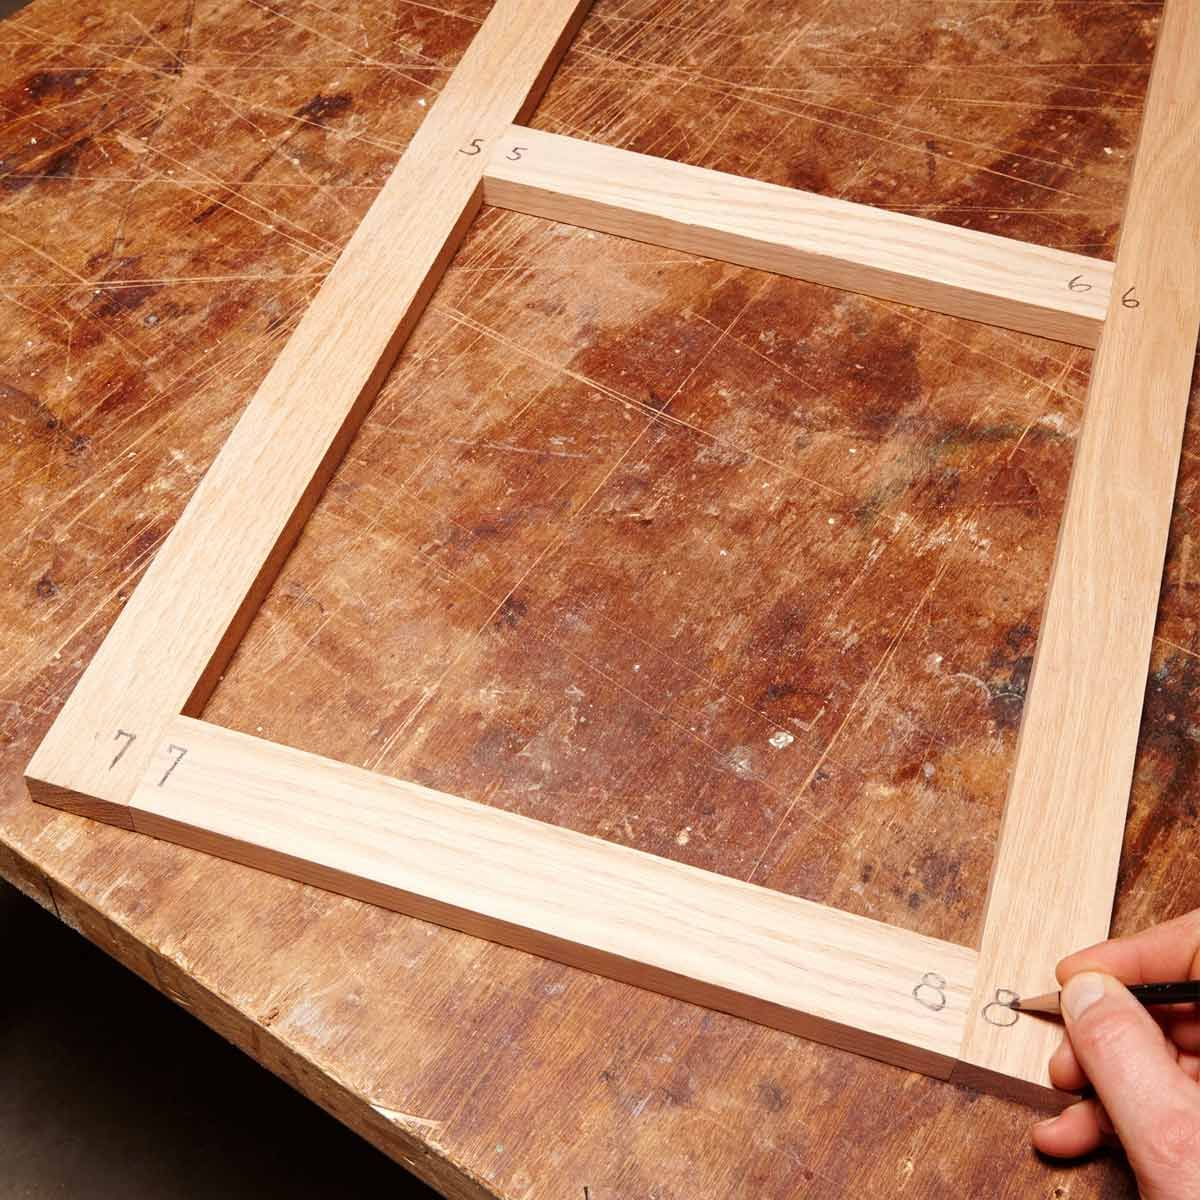 Face Frame Cabinet Building Tips - Face frame cabinets, Framed cabinet, Building kitchen cabinets, Cabinet plans, Diy kitchen cabinets, Face framing - Cabinet building advice from the Family Handyman pros